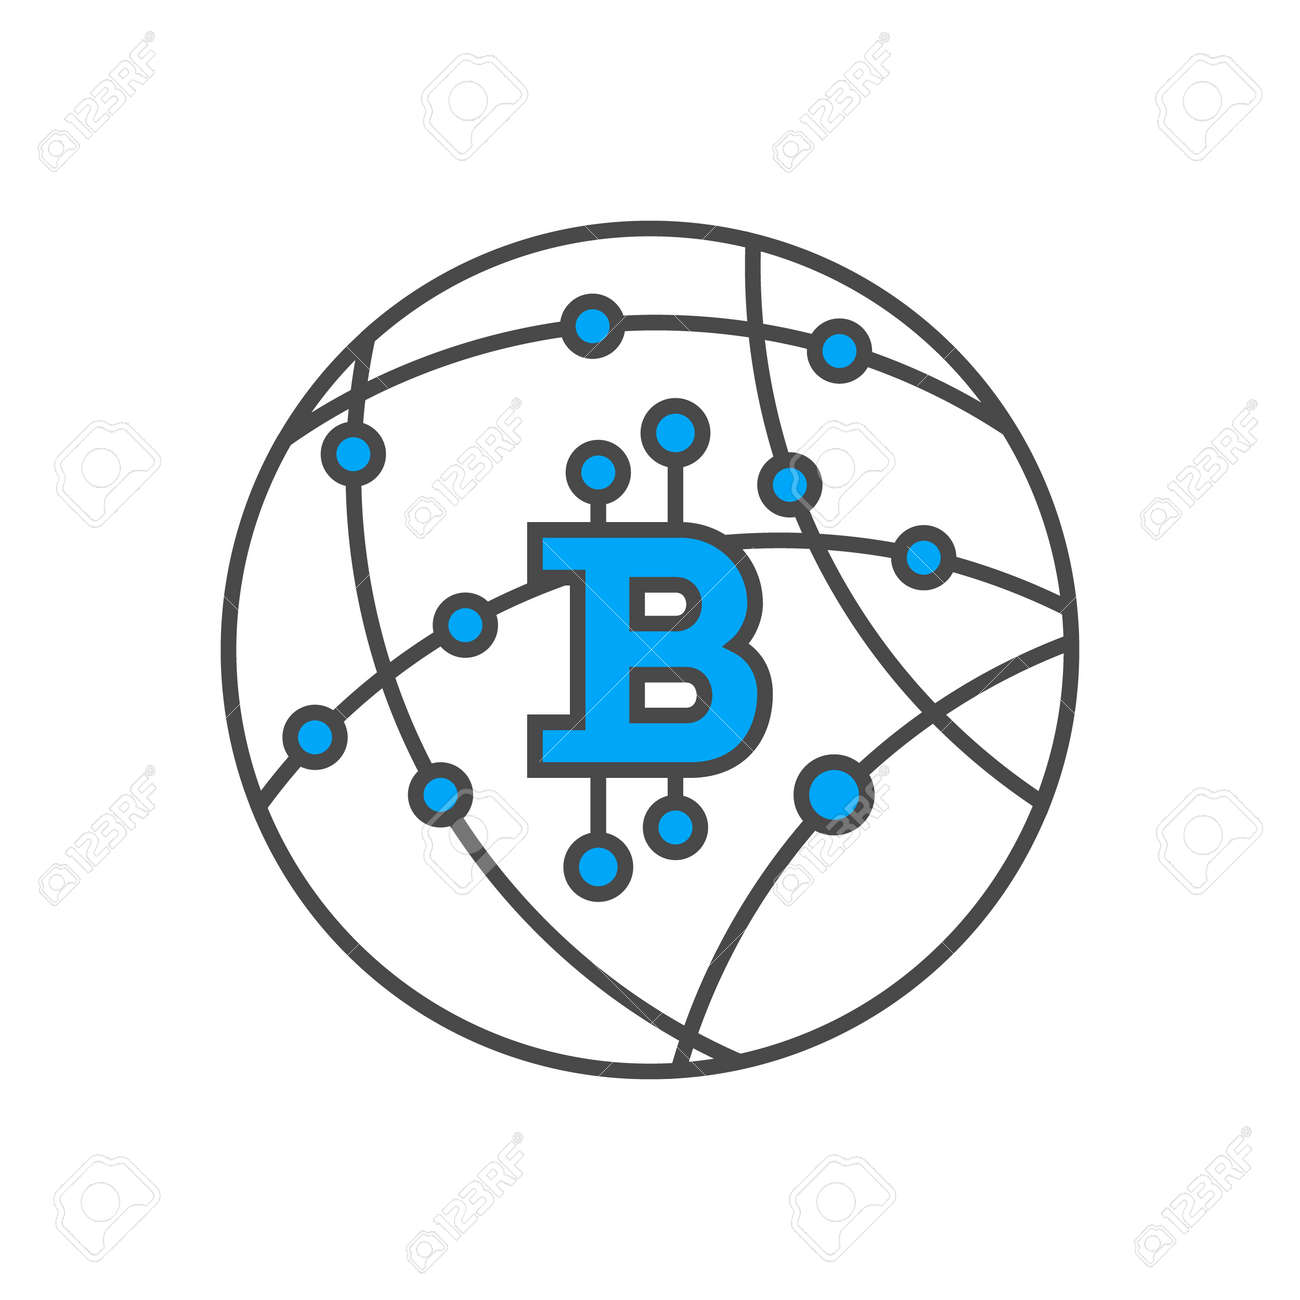 83309733 Blockchain Network Conceptual Icon Distributed Ledger Technology Business Cloud Computing Global Pay Stock Vector Database